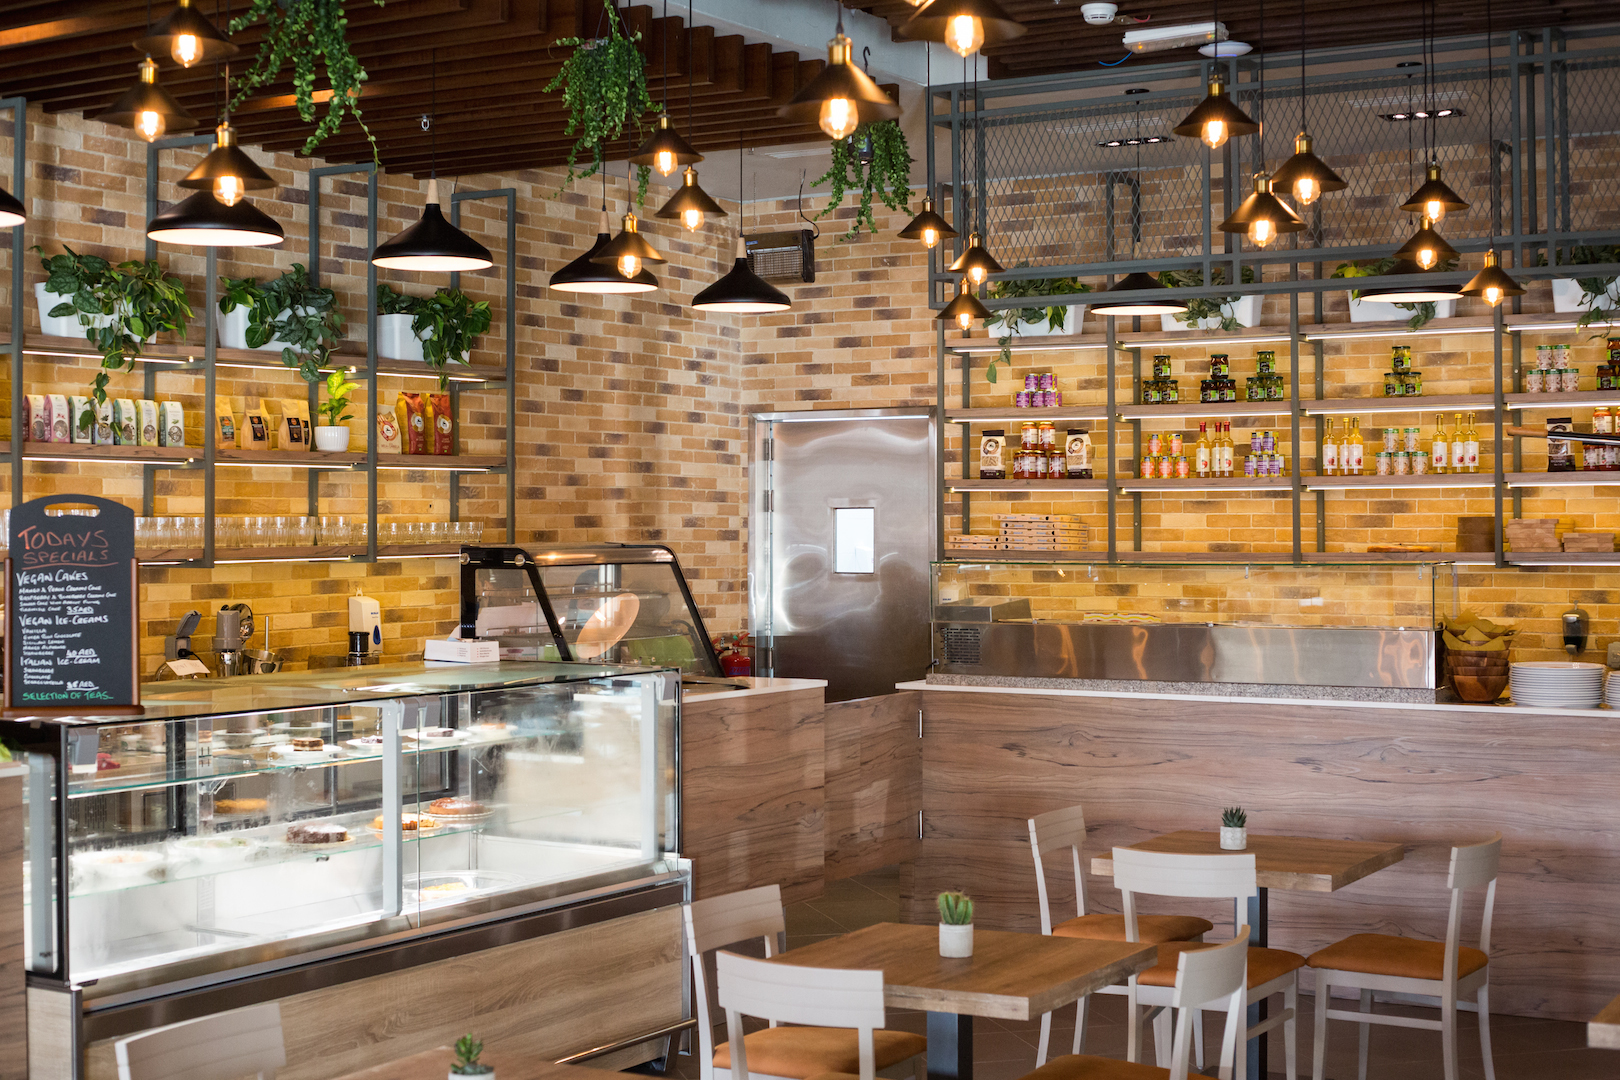 Let's Organic Restaurant & Café opens up in Jumeirah!!